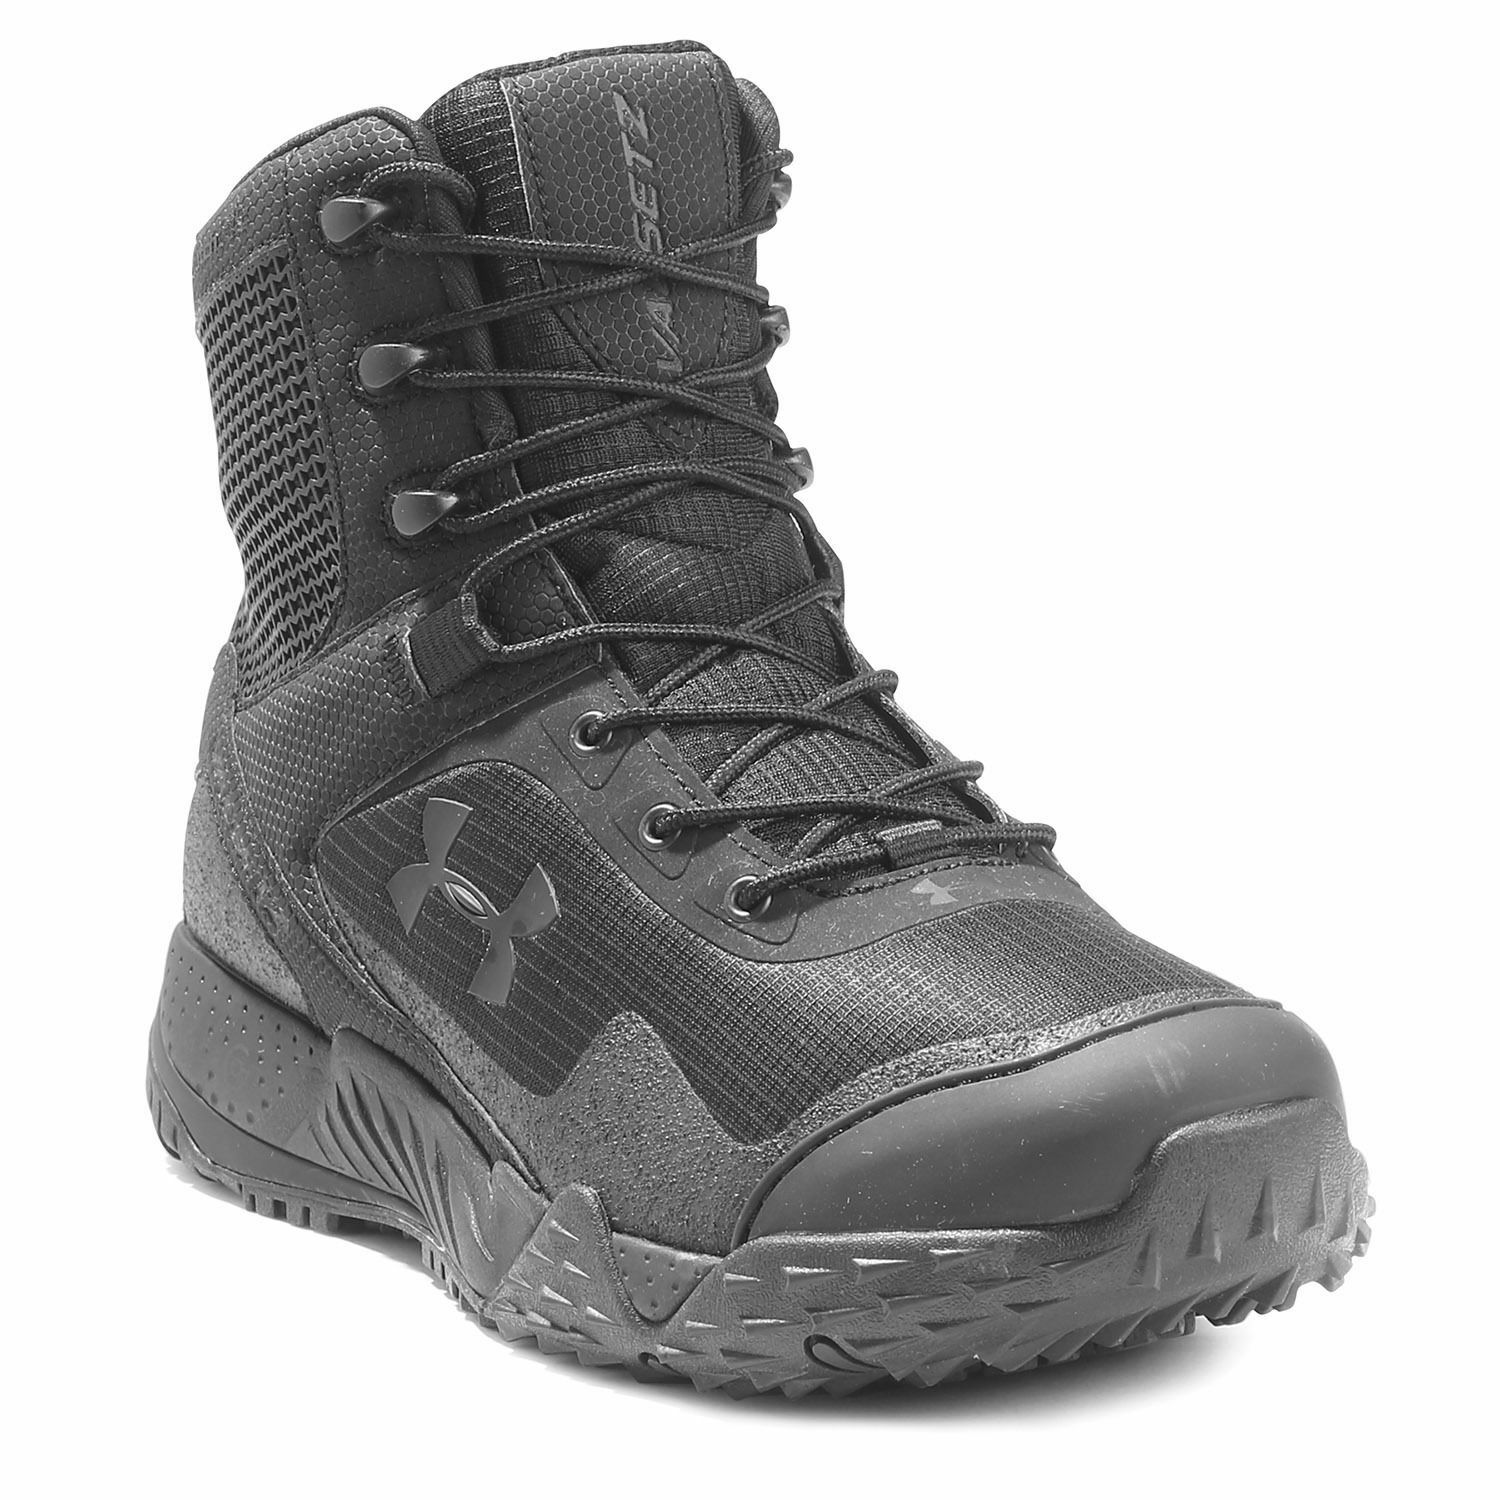 Escupir Monopolio observación  Under Armour Boots for Men for Sale | Shop New & Used Men's Boots | eBay